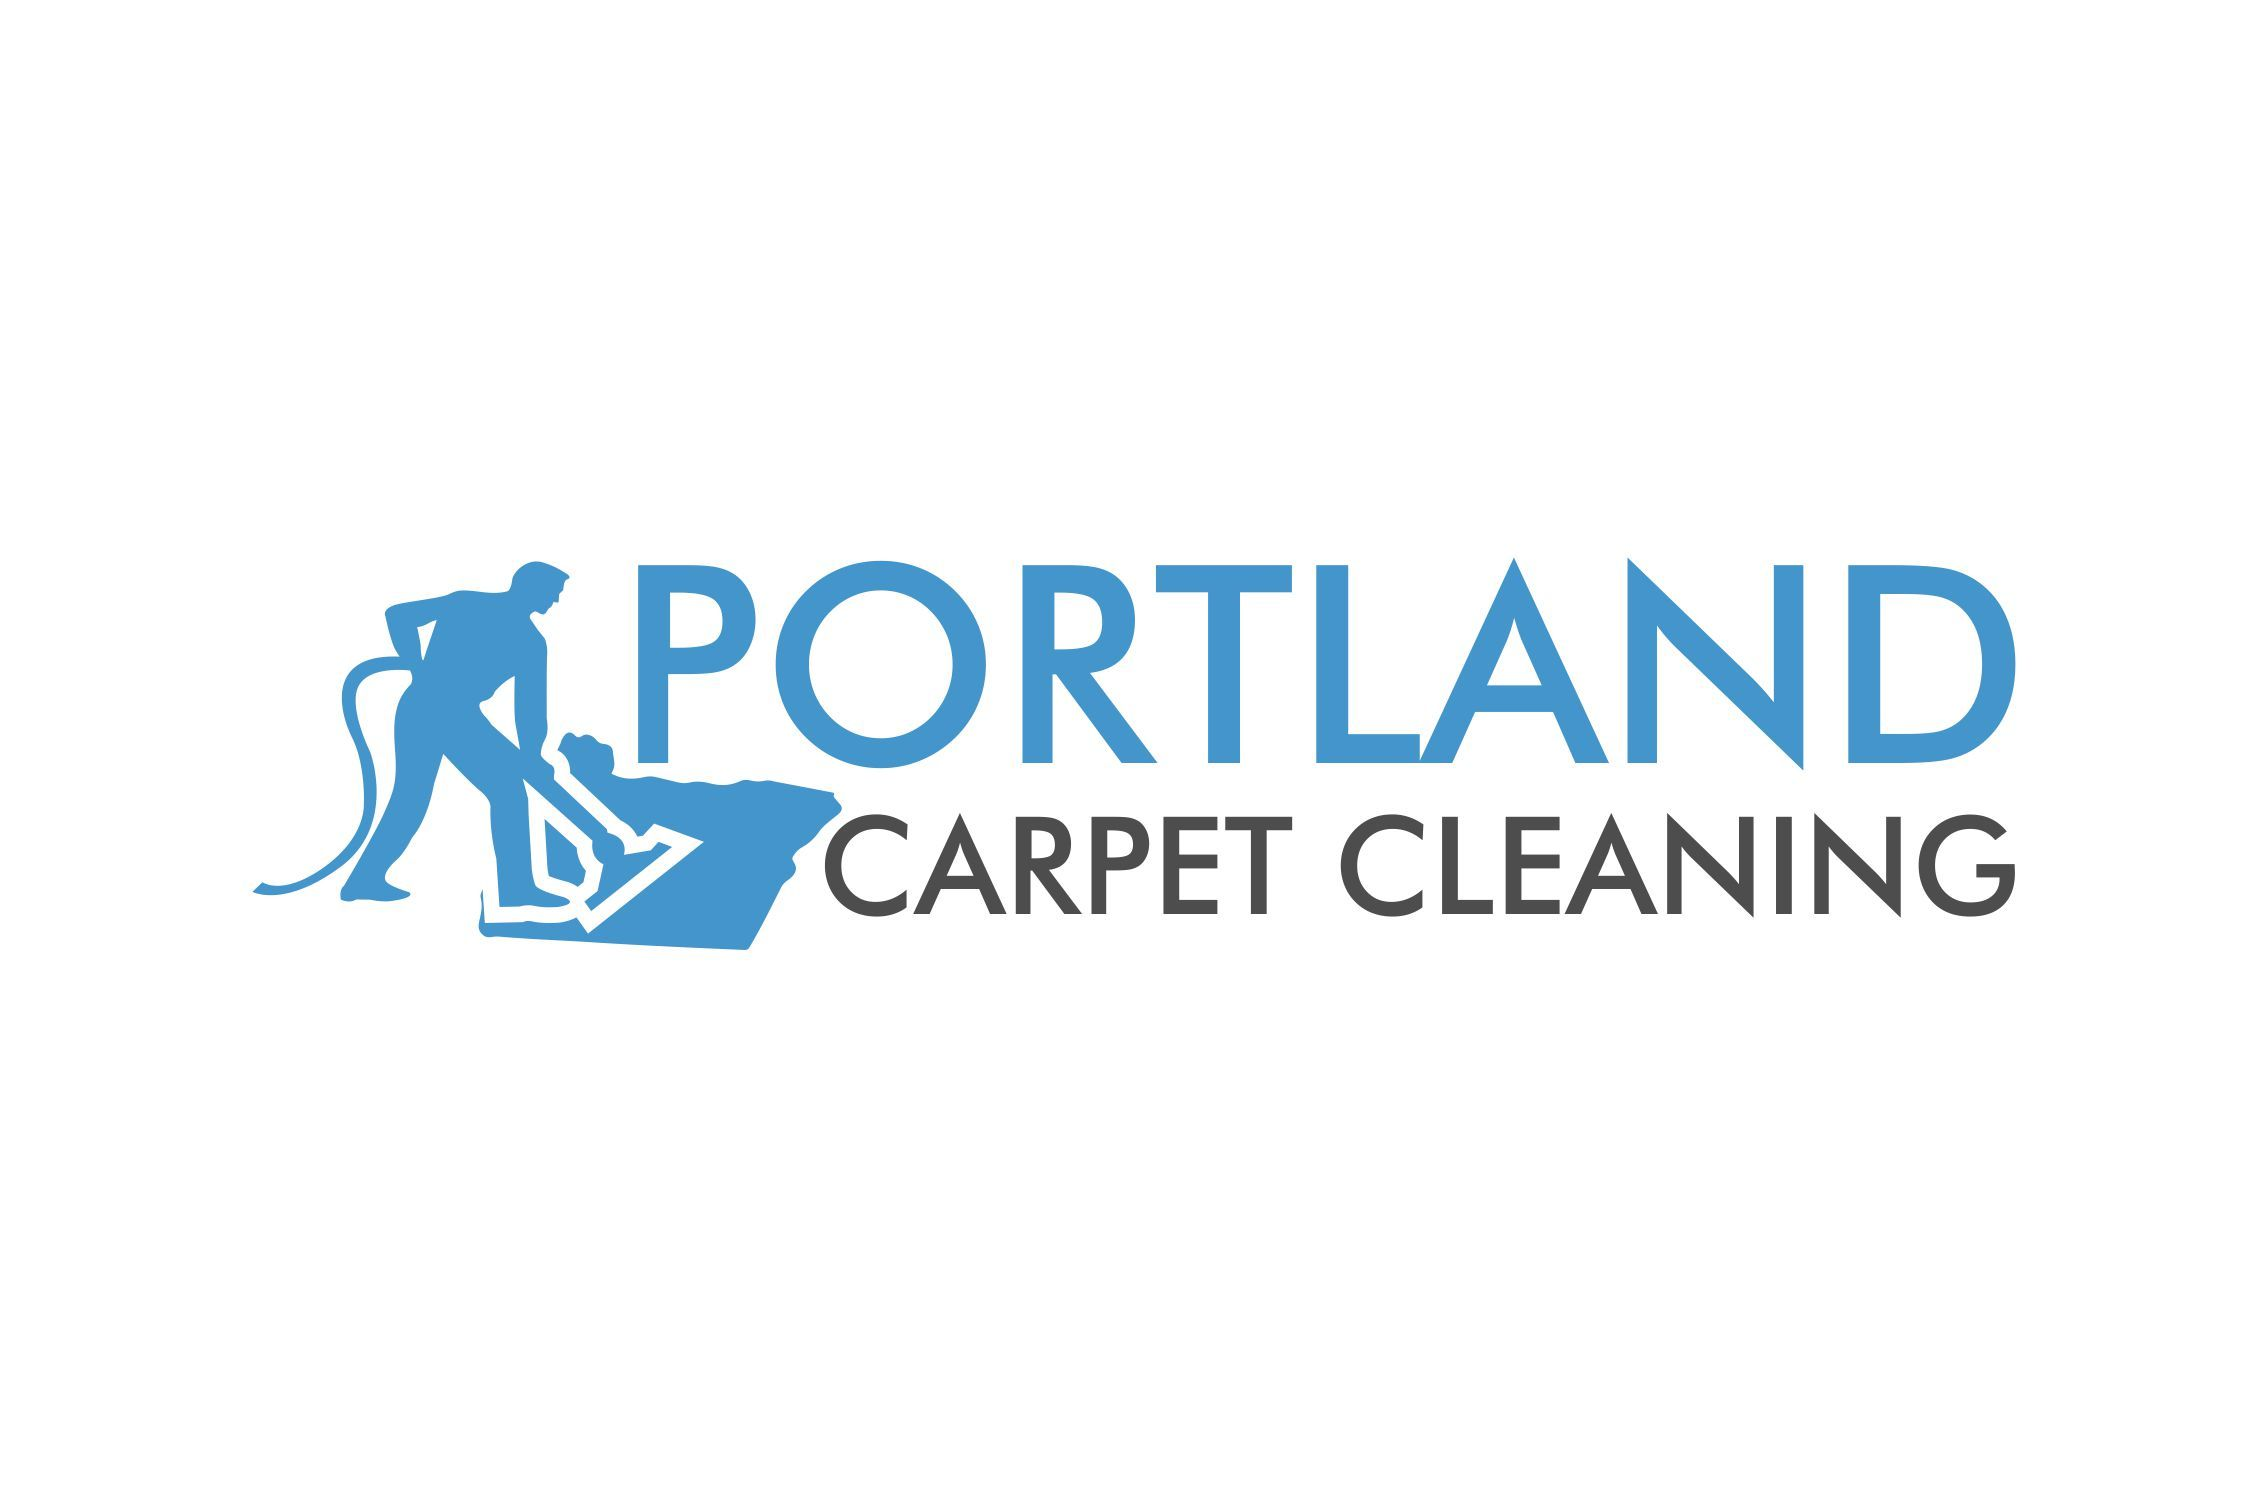 Portland Carpet Cleaning Llc In Tigard Or Carpet